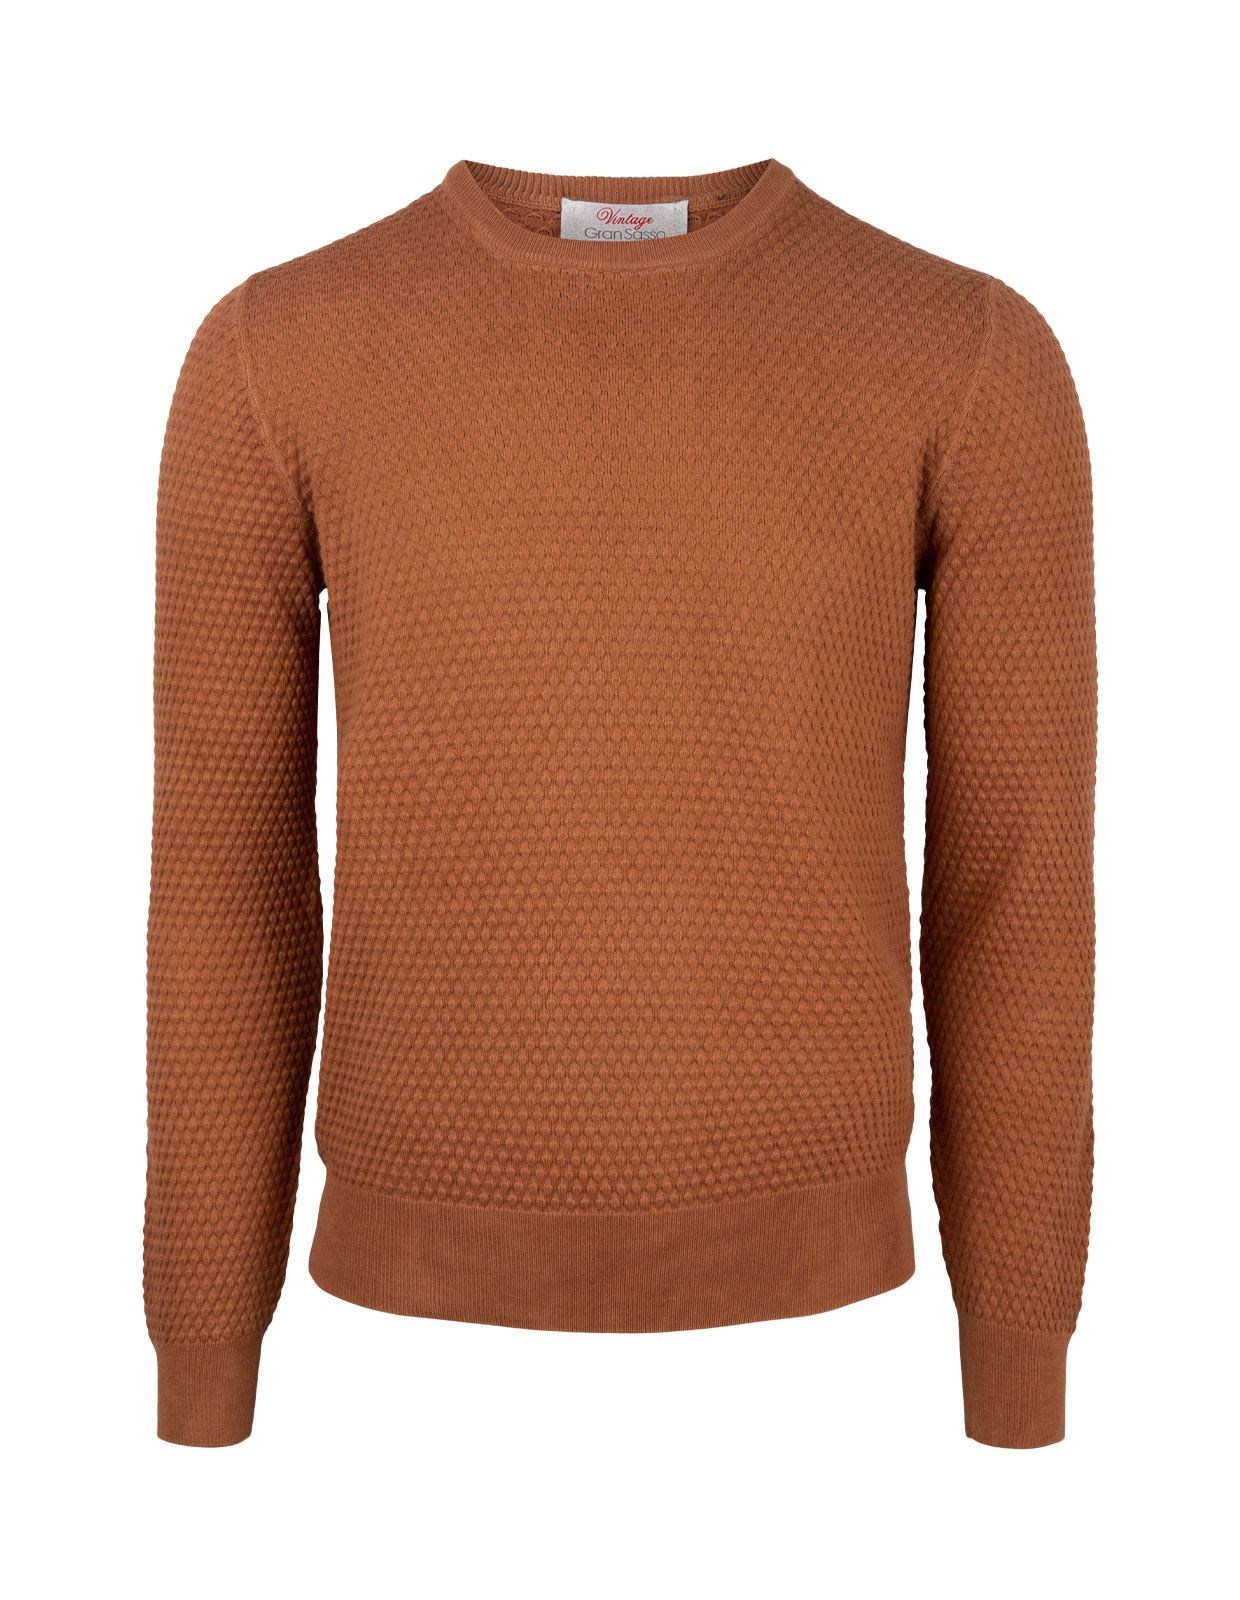 Crew Neck Knitted Texture Cotton Tobacco